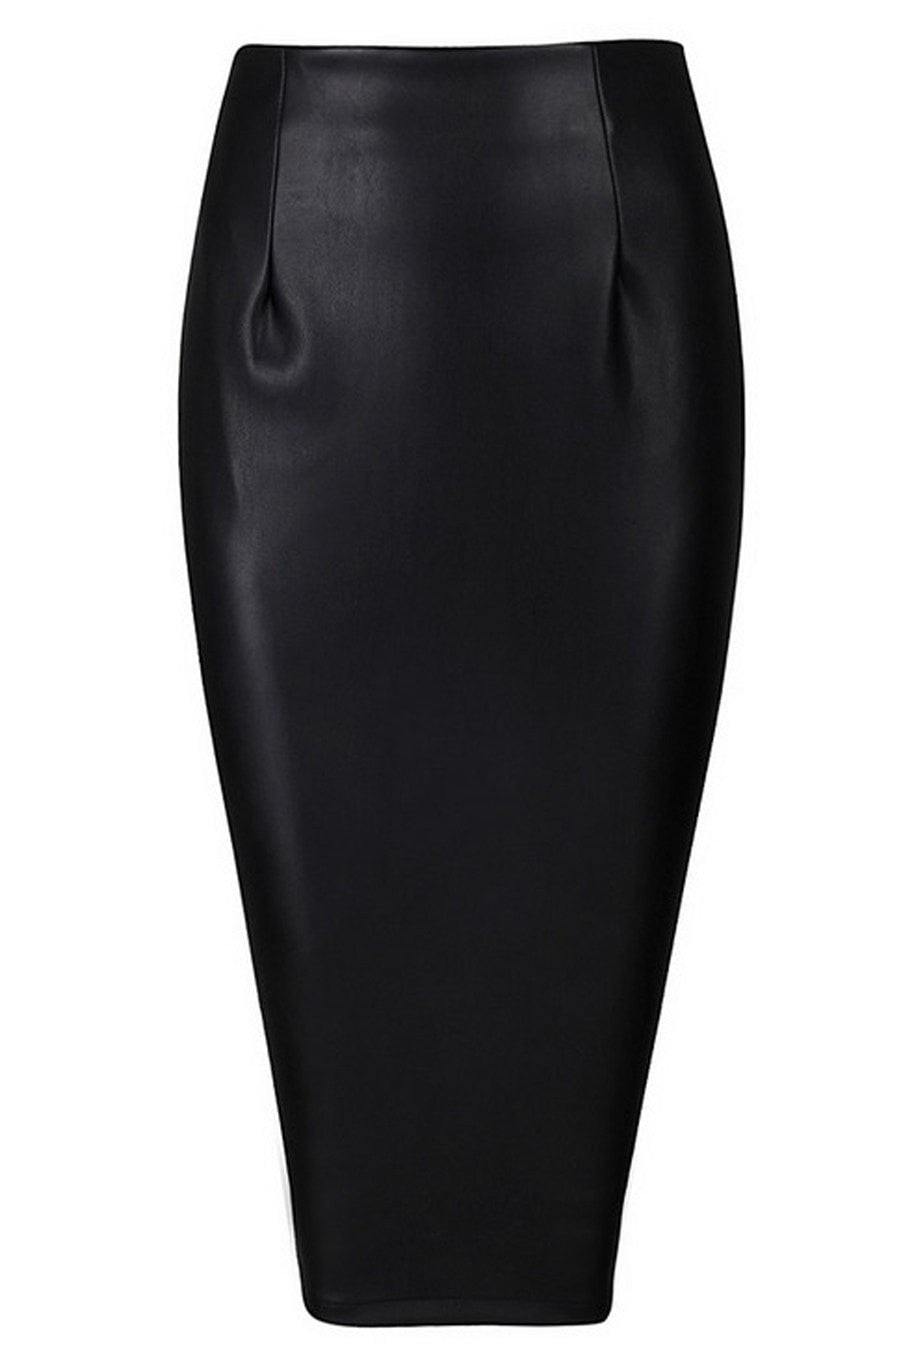 Honey Couture JAYDA Vegan Leather Black Pencil Skirt